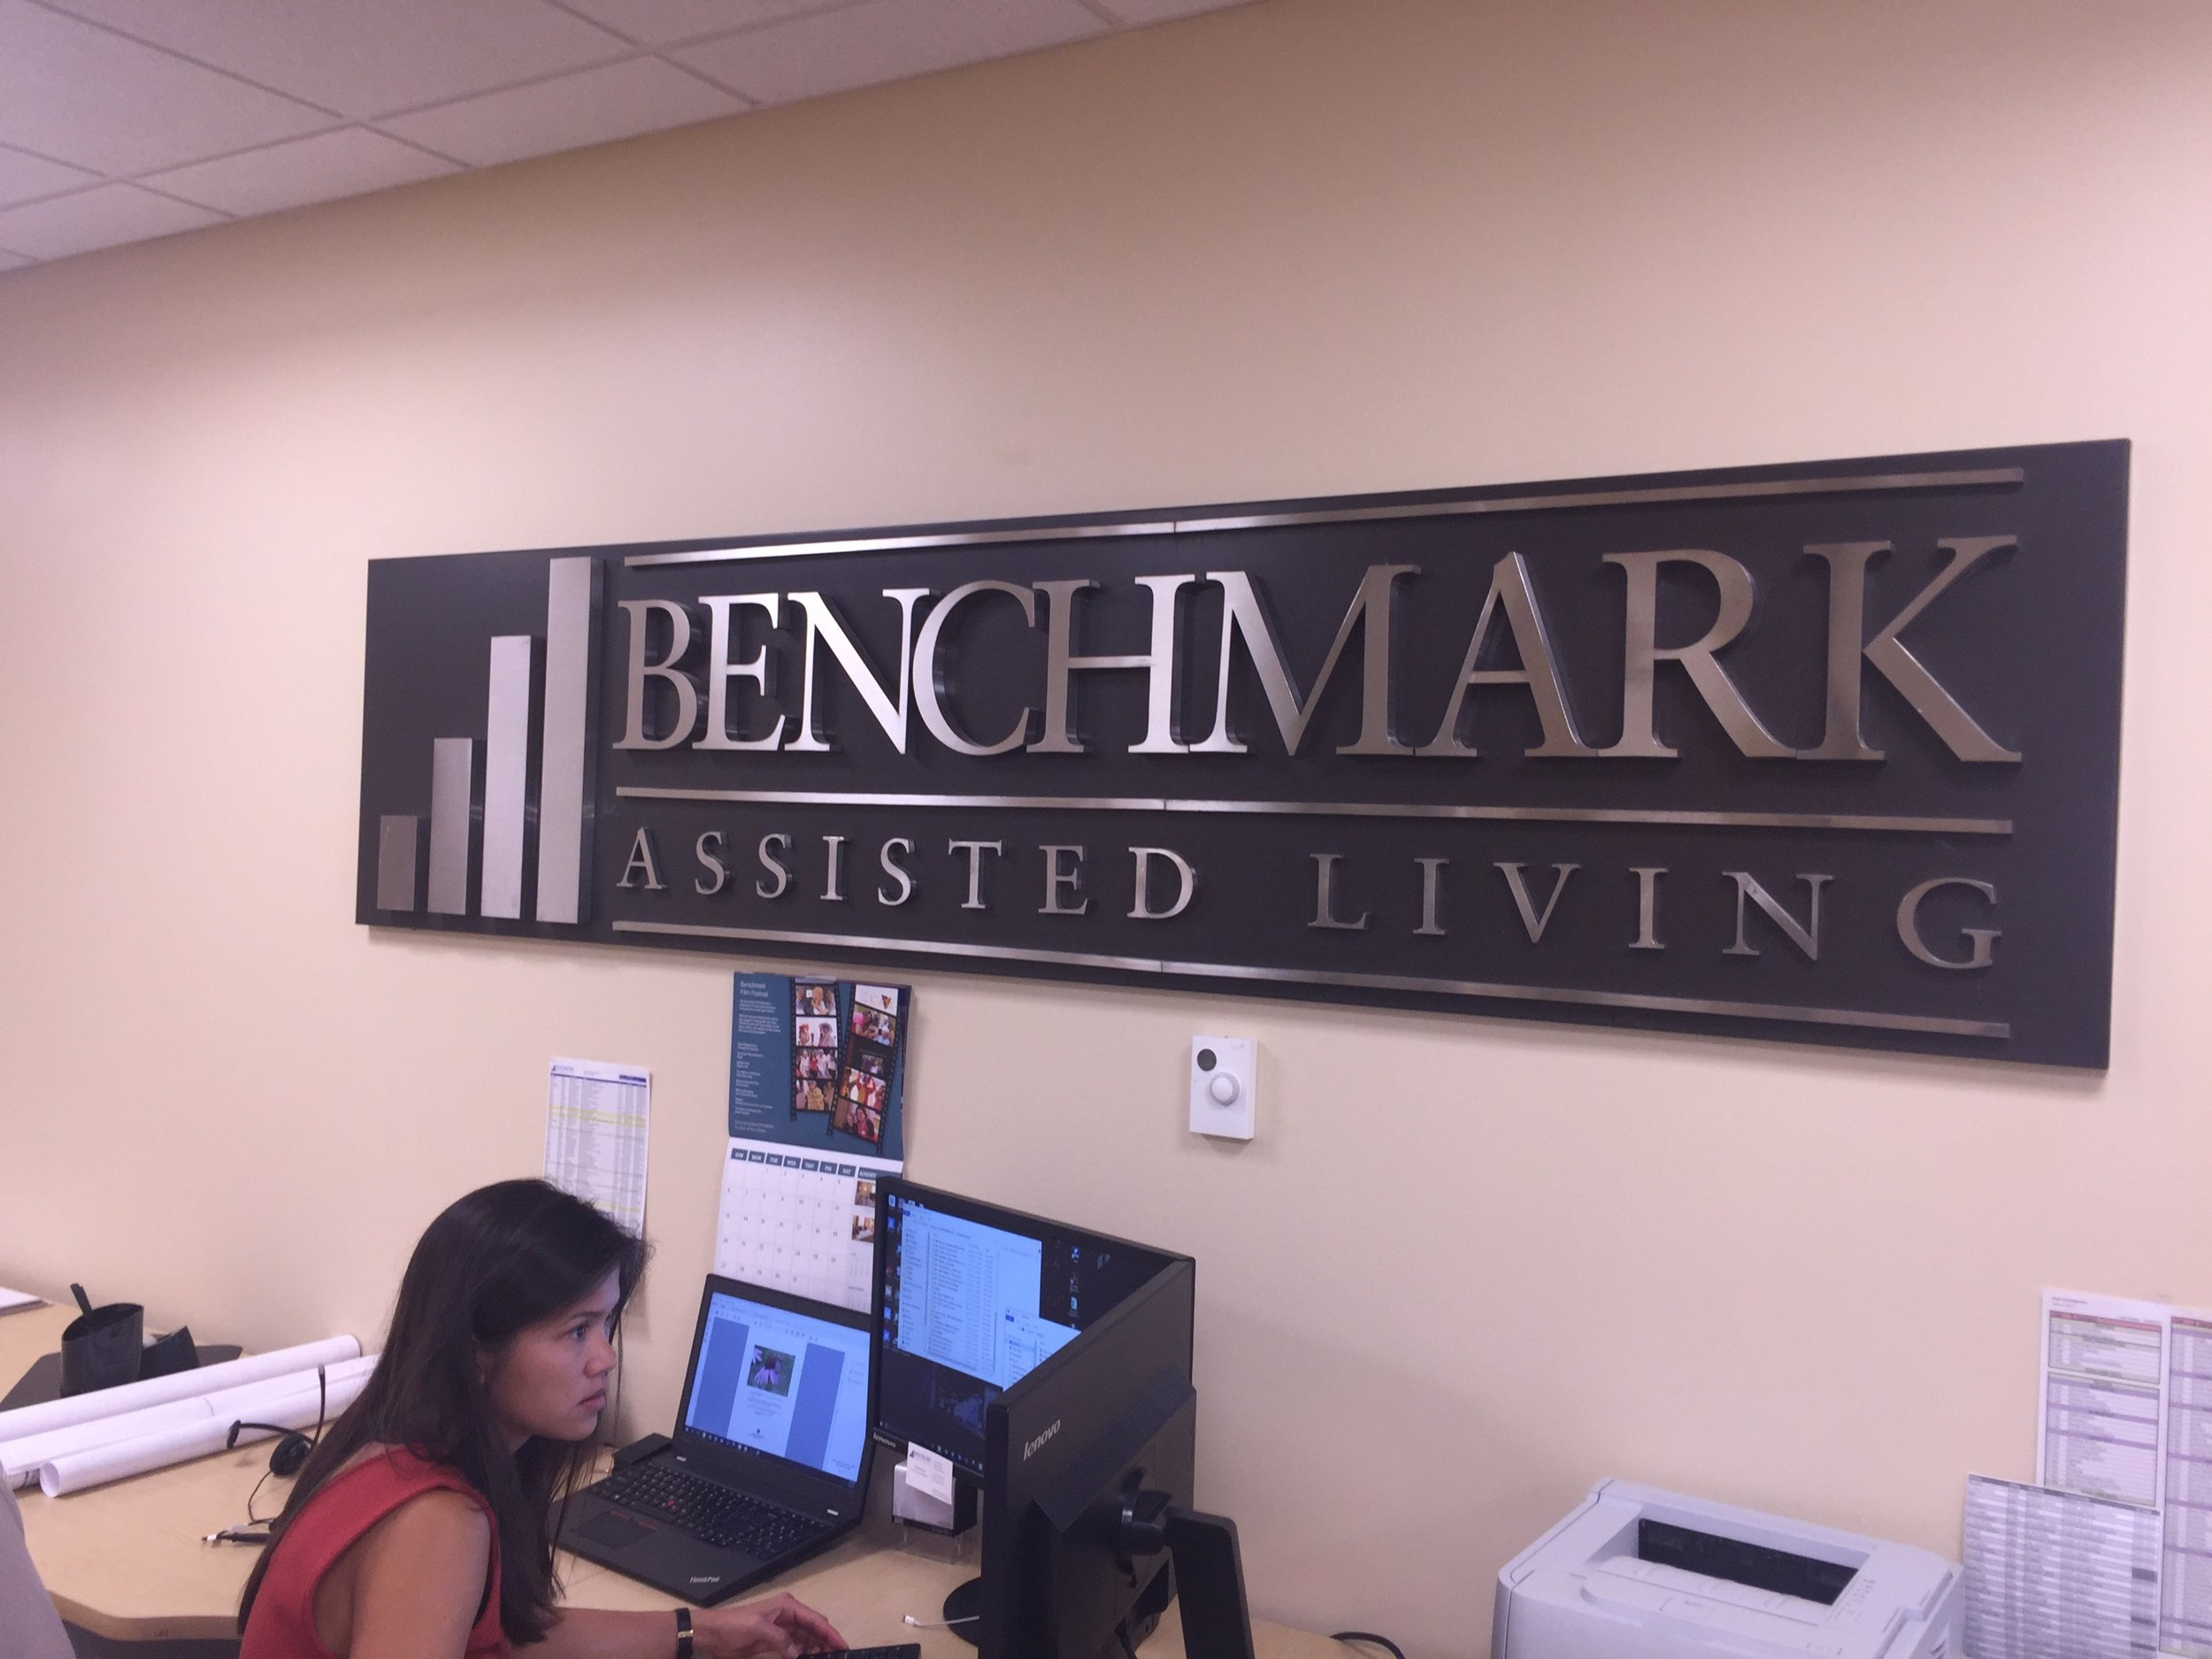 The company's original name changed in 2013 to Benchmark Senior Living, reflecting the continuum of care offered across its 55 communities in eight states.